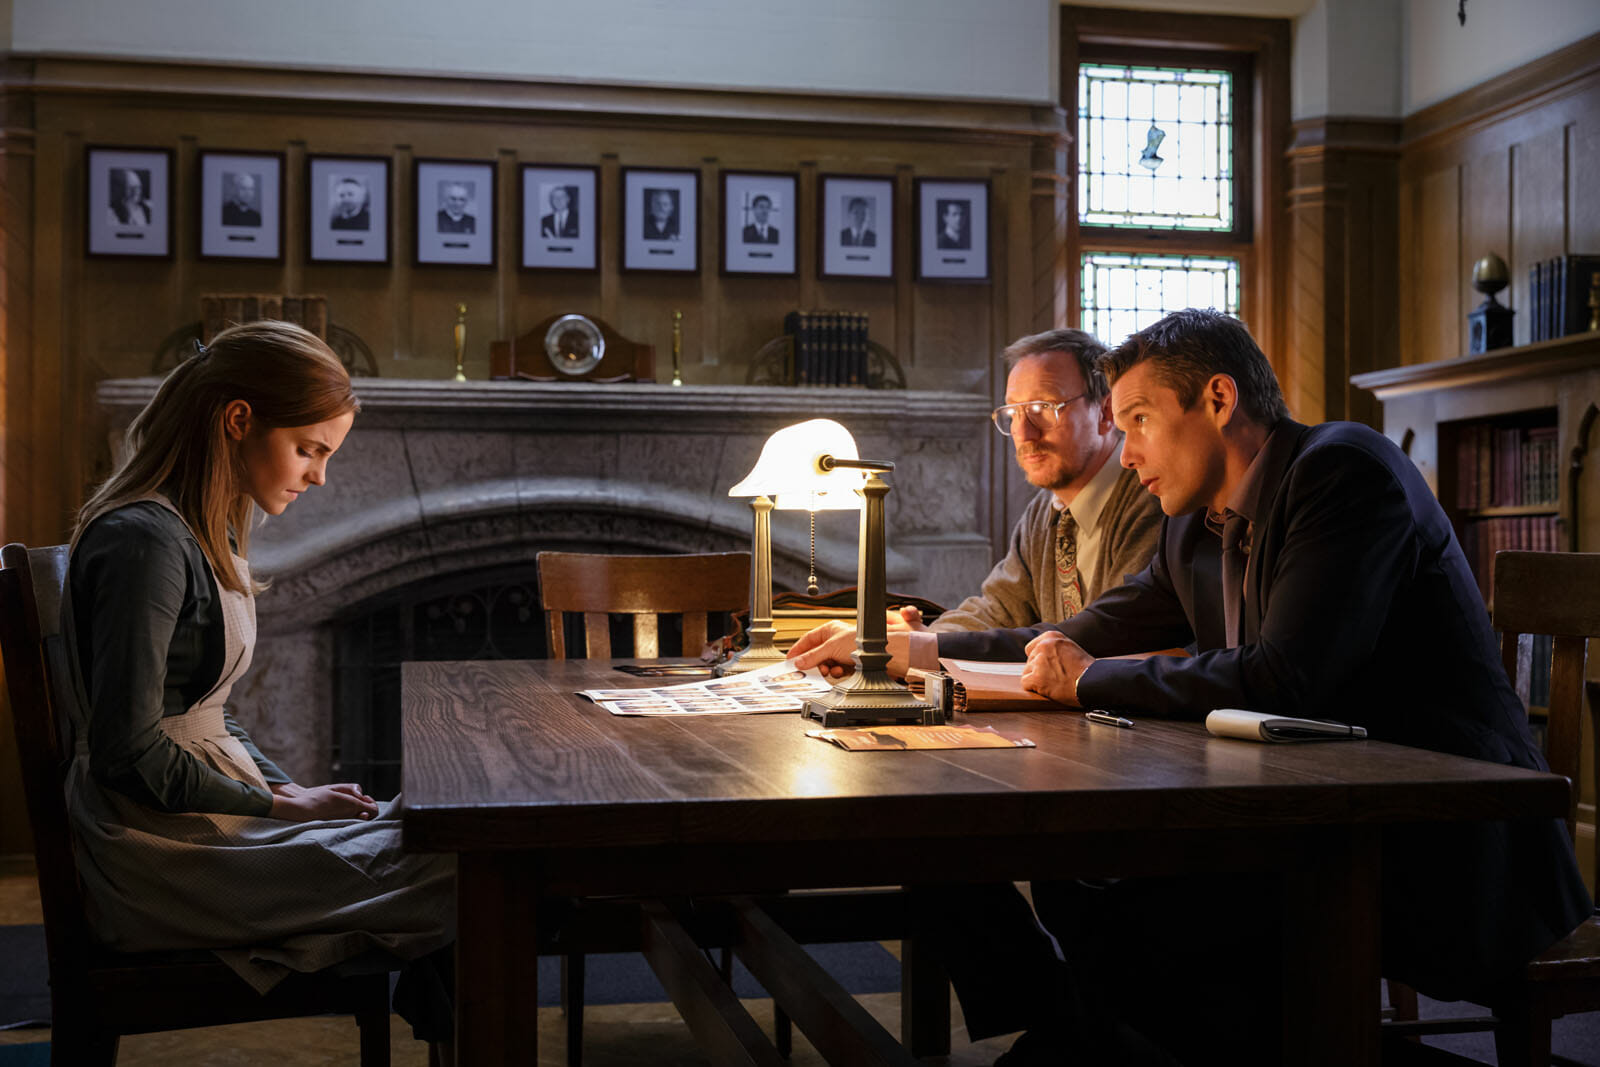 Regression-Emma-Watson-Ethan-Hawke-David-Thewlis